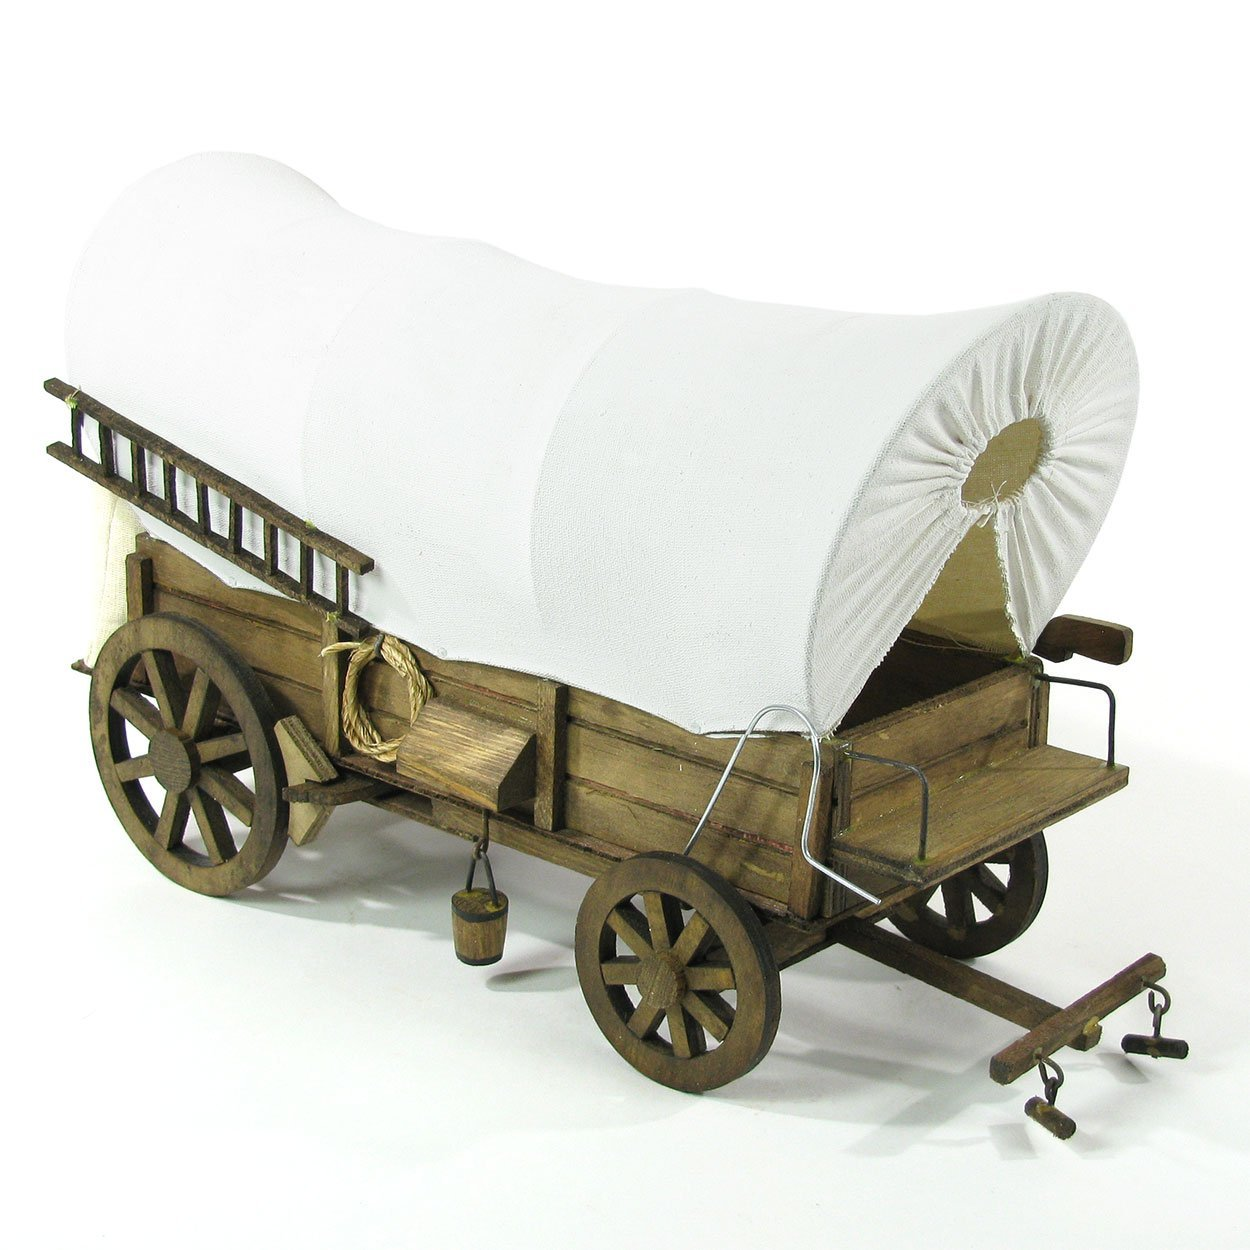 16 Inch Detailed Wooden Replica Covered Wagon